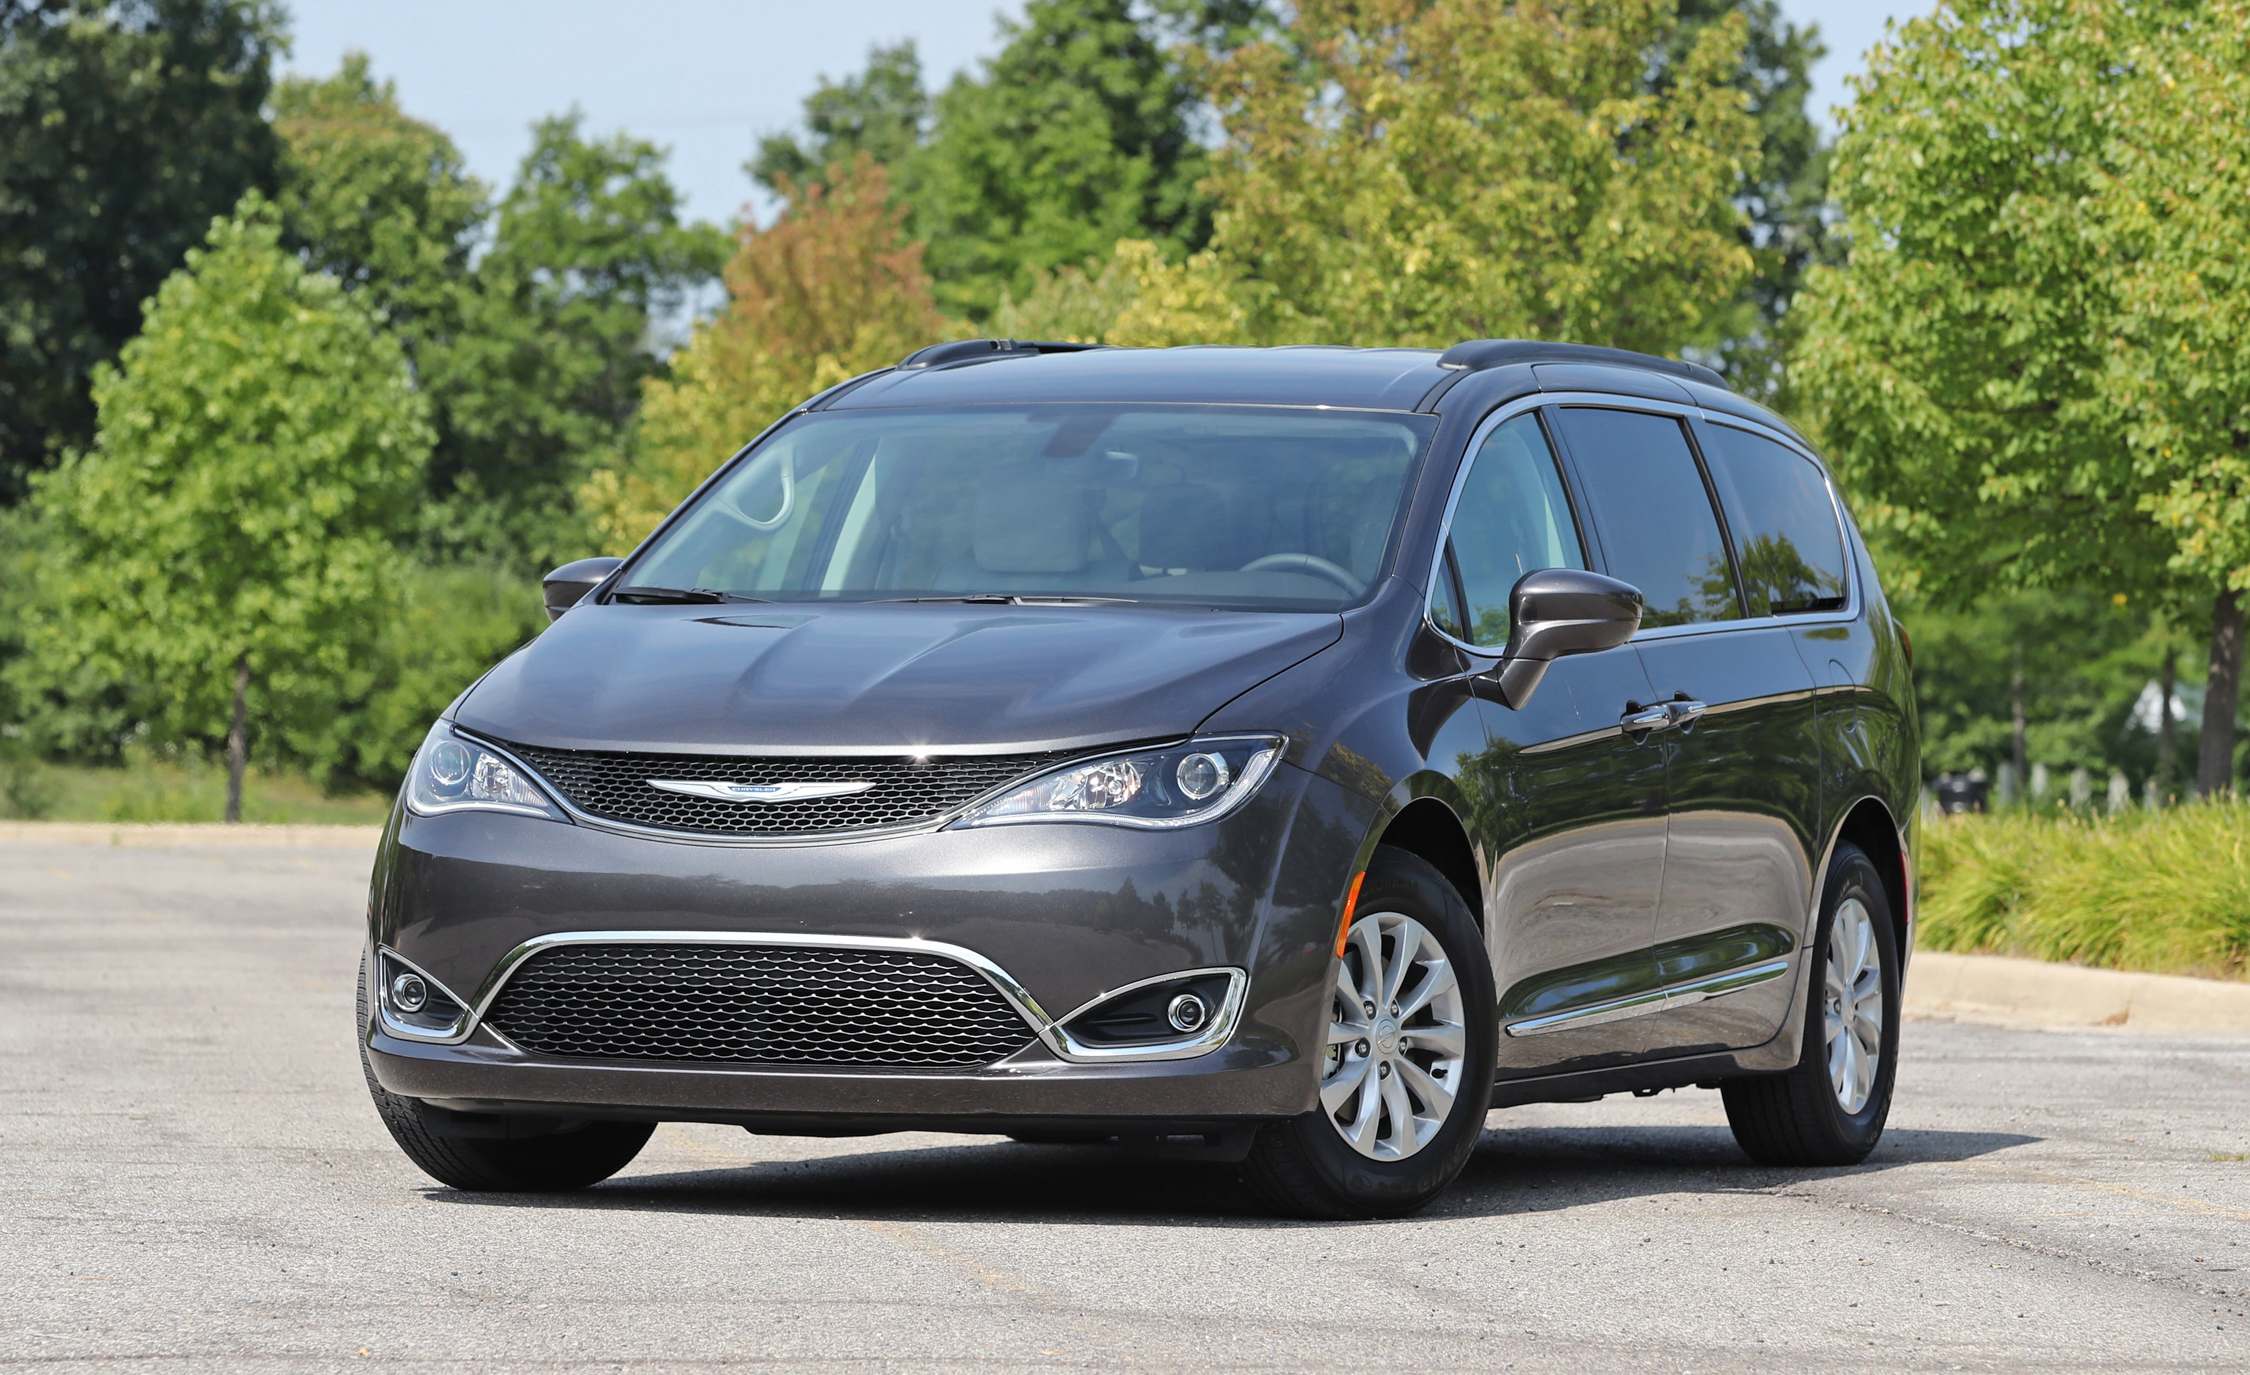 2017 Chrysler Pacifica Exterior Front (Photo 2 of 25)